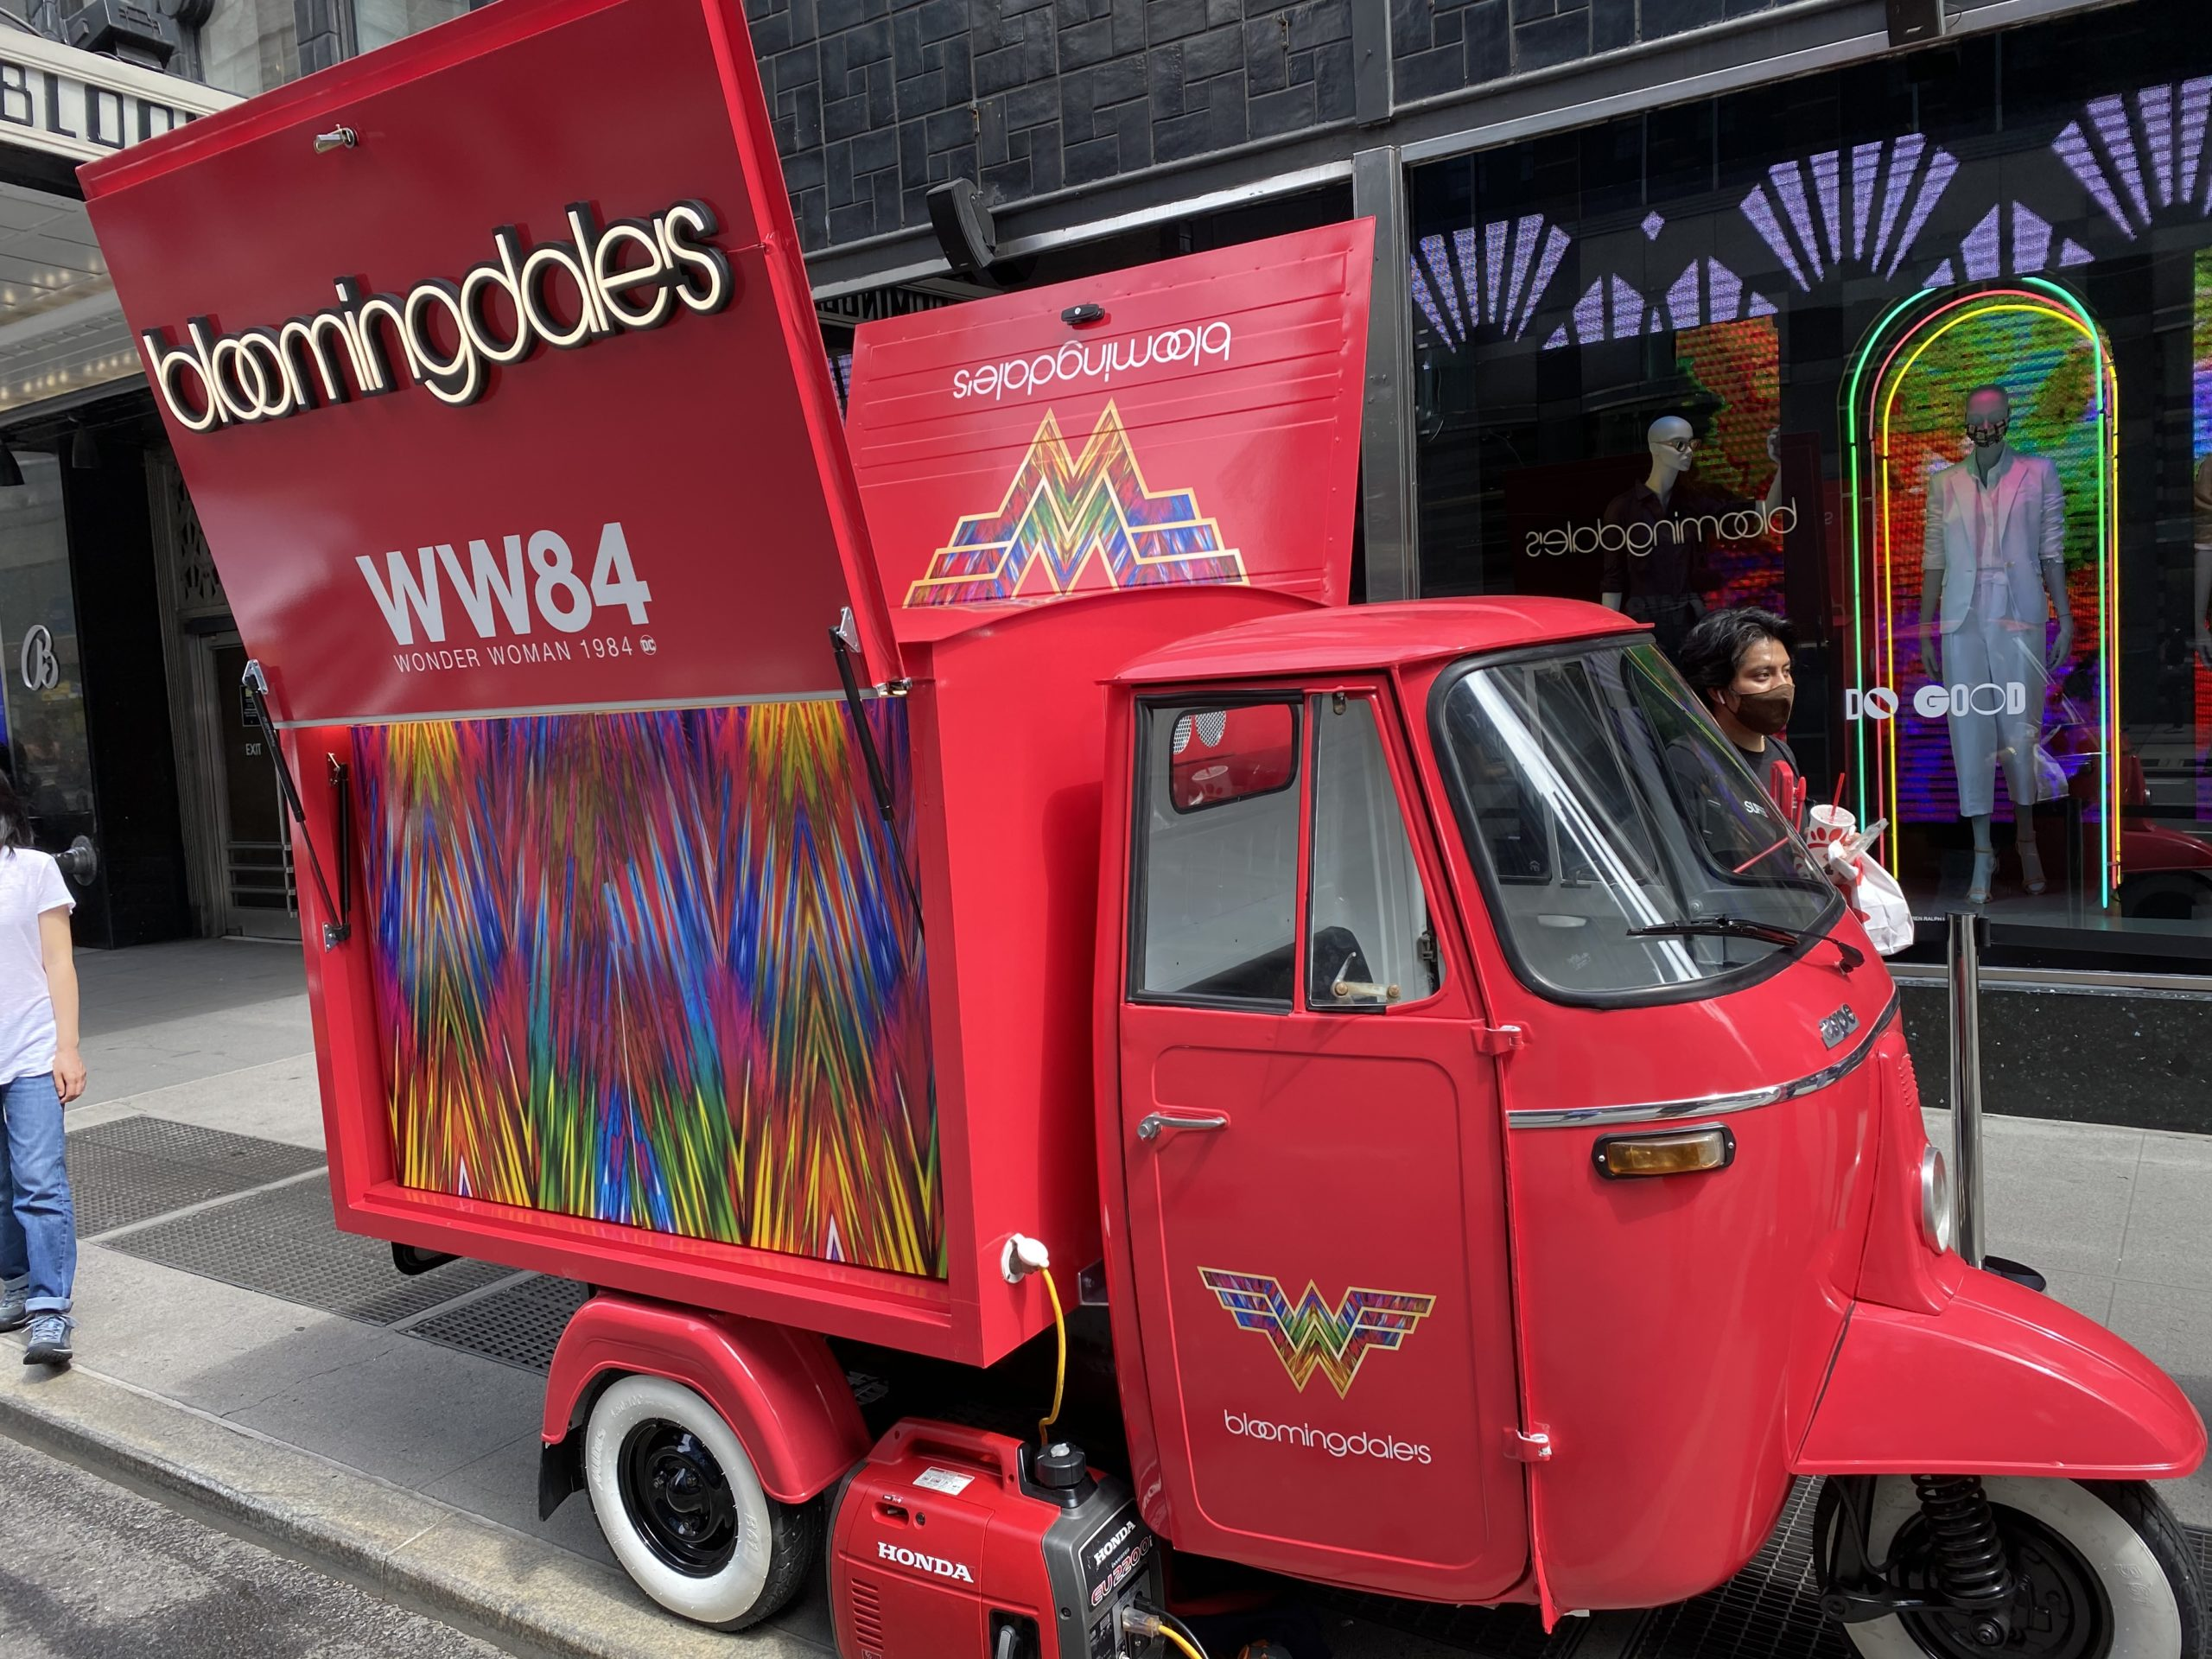 Bloomingdales WW84 Brand Activation